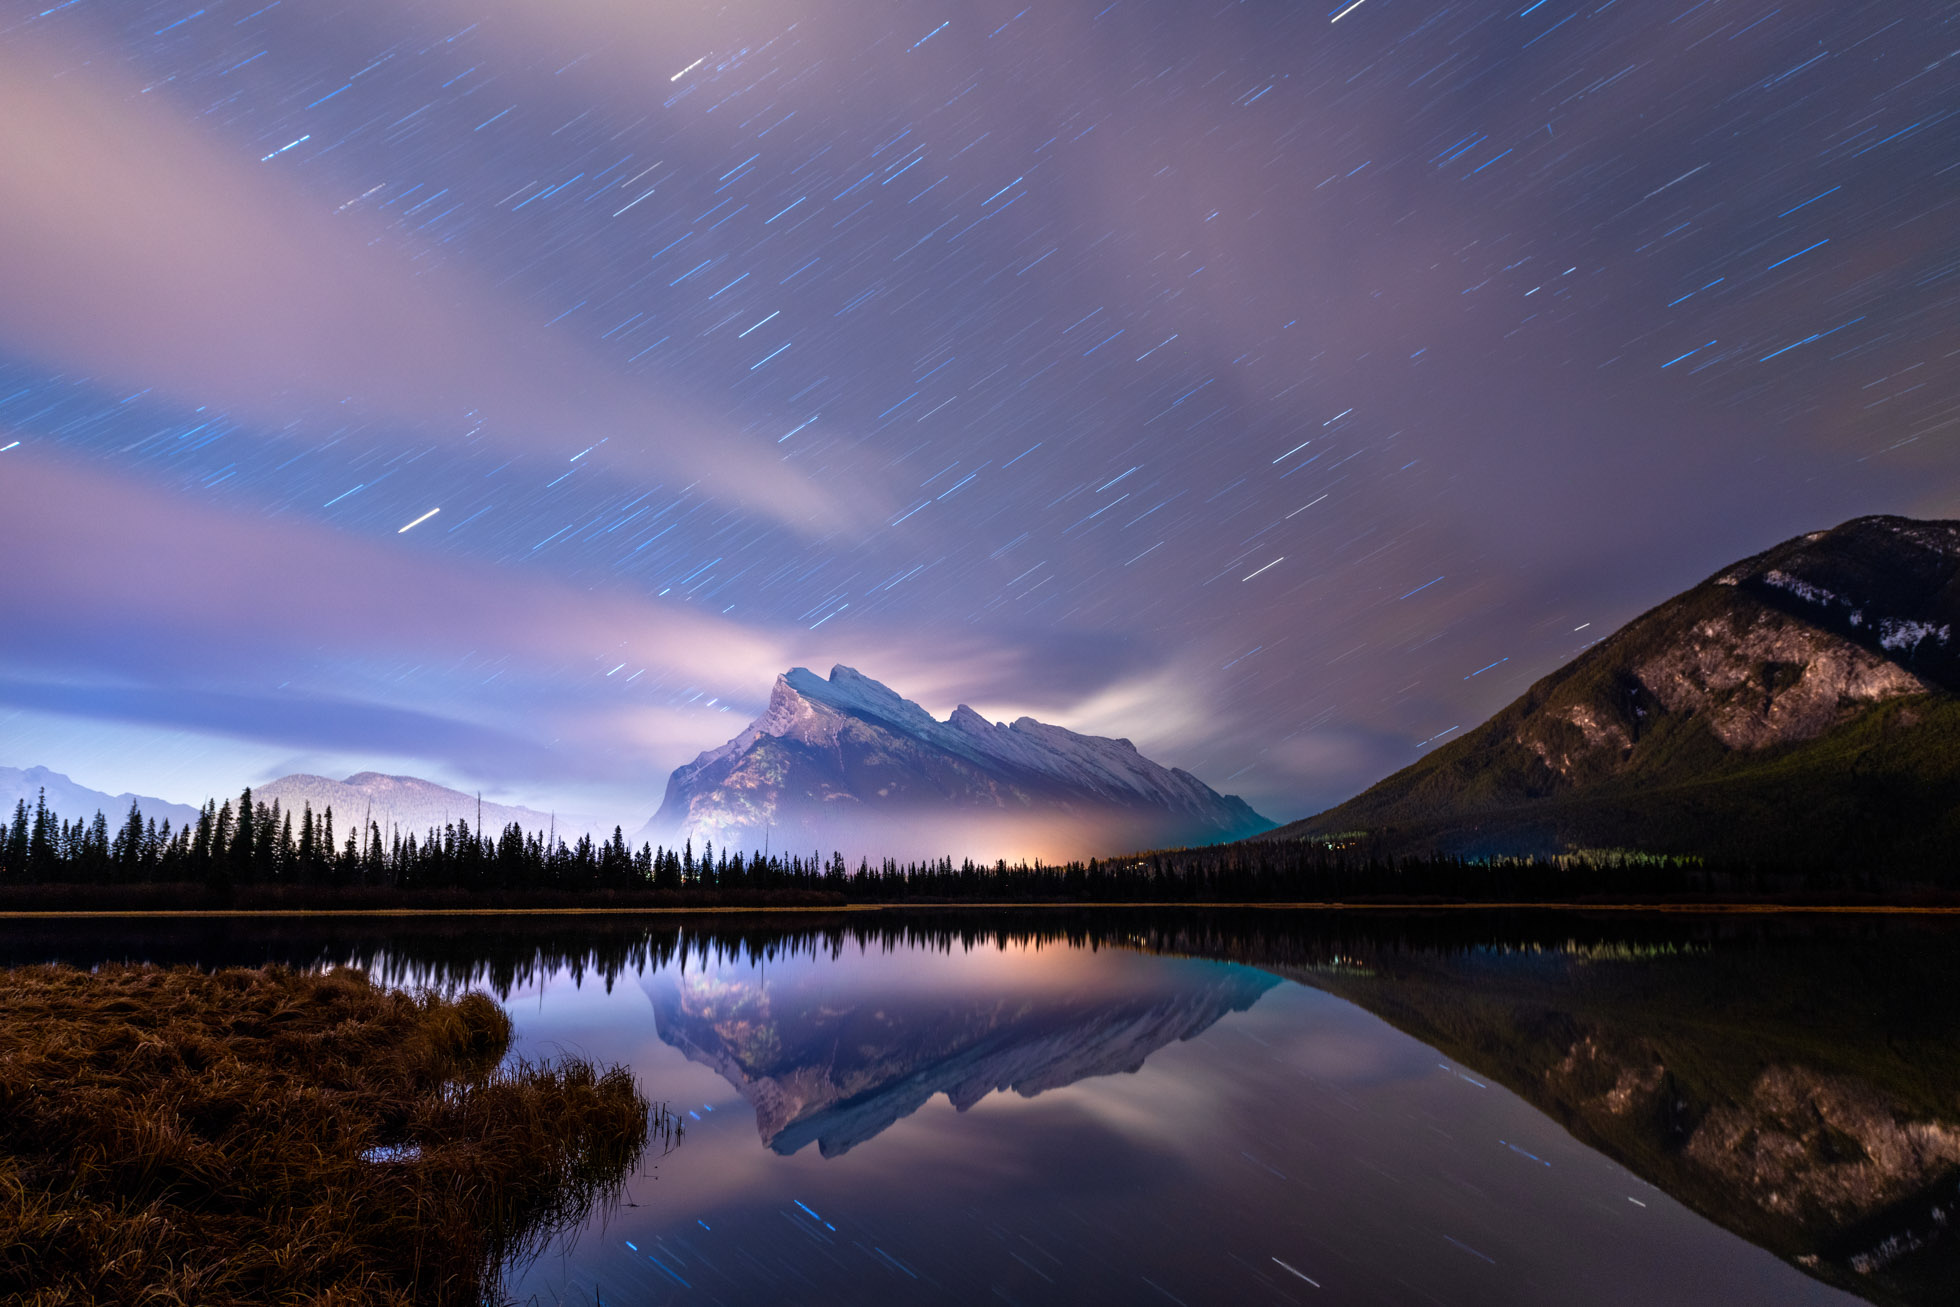 The first night in Canada in November, we ran over to Vermilion Lakes for a little star shooting. This capture is an 8 minute exposure of the stars over Mt. Rundle.